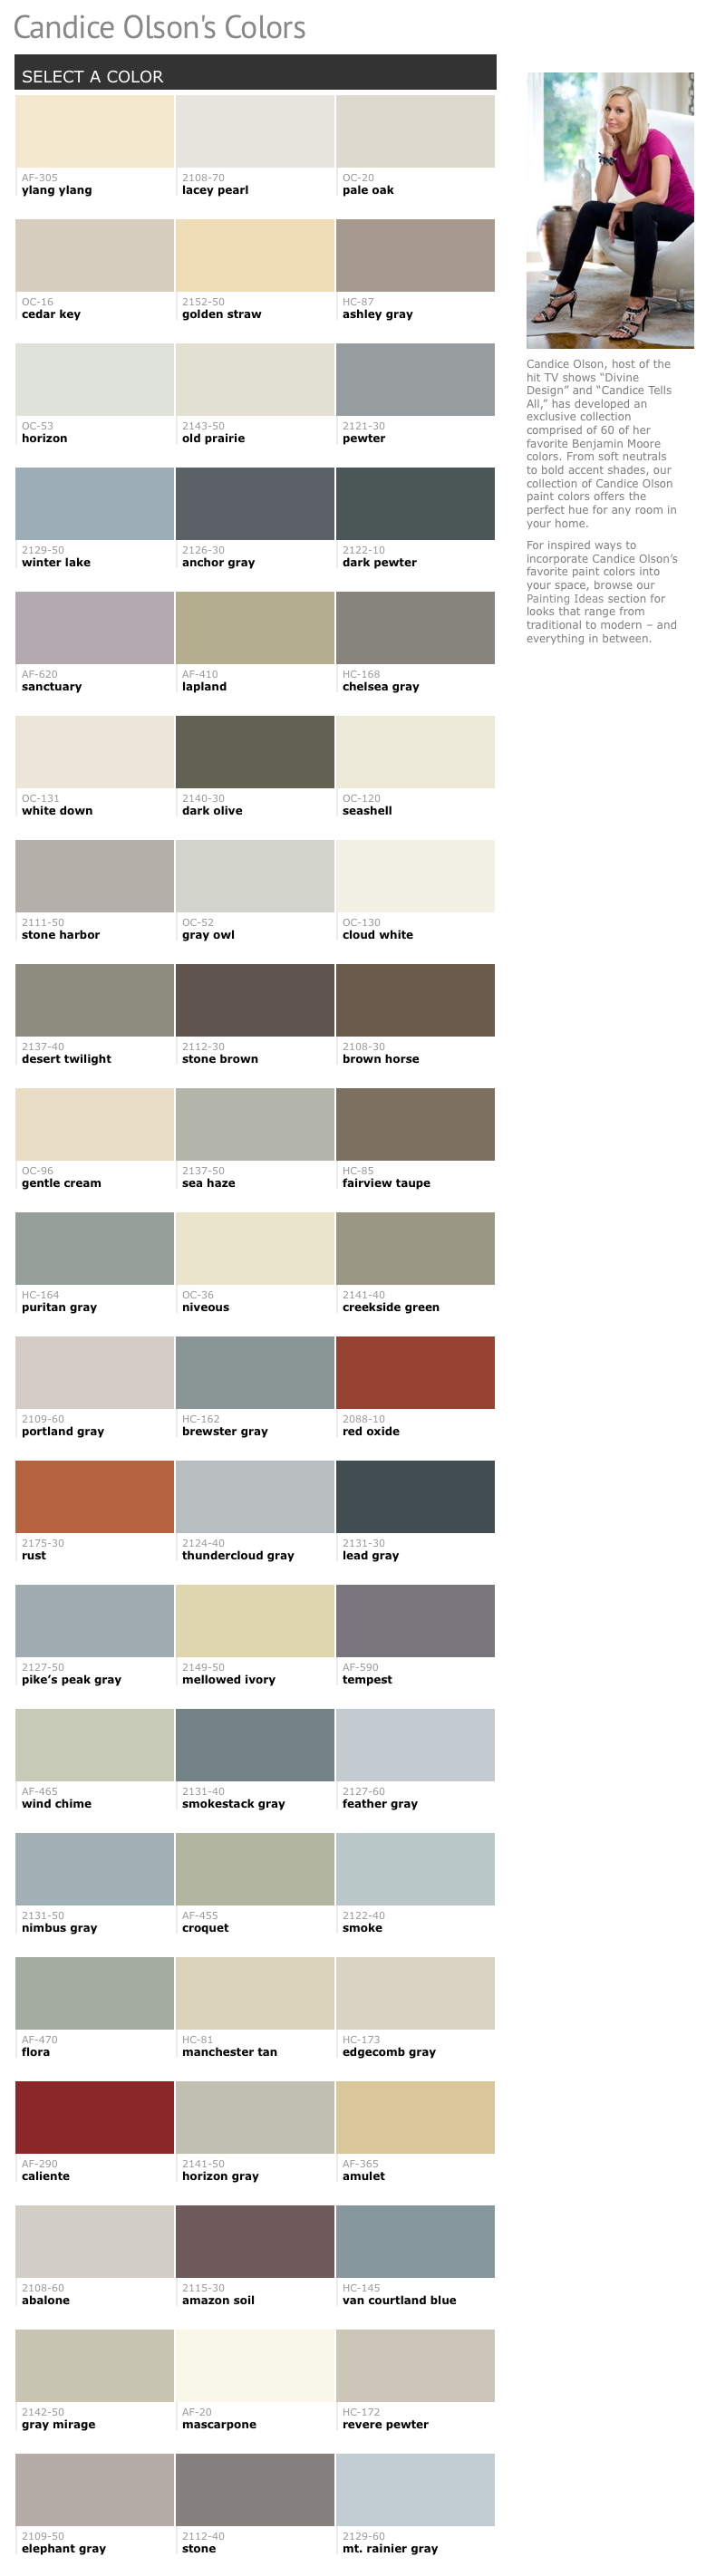 60 Of Candice Olson S Favorite Benjamin Moore Paint Colors Favorite Paint Colors Paint Colors For Home Favorite Paint